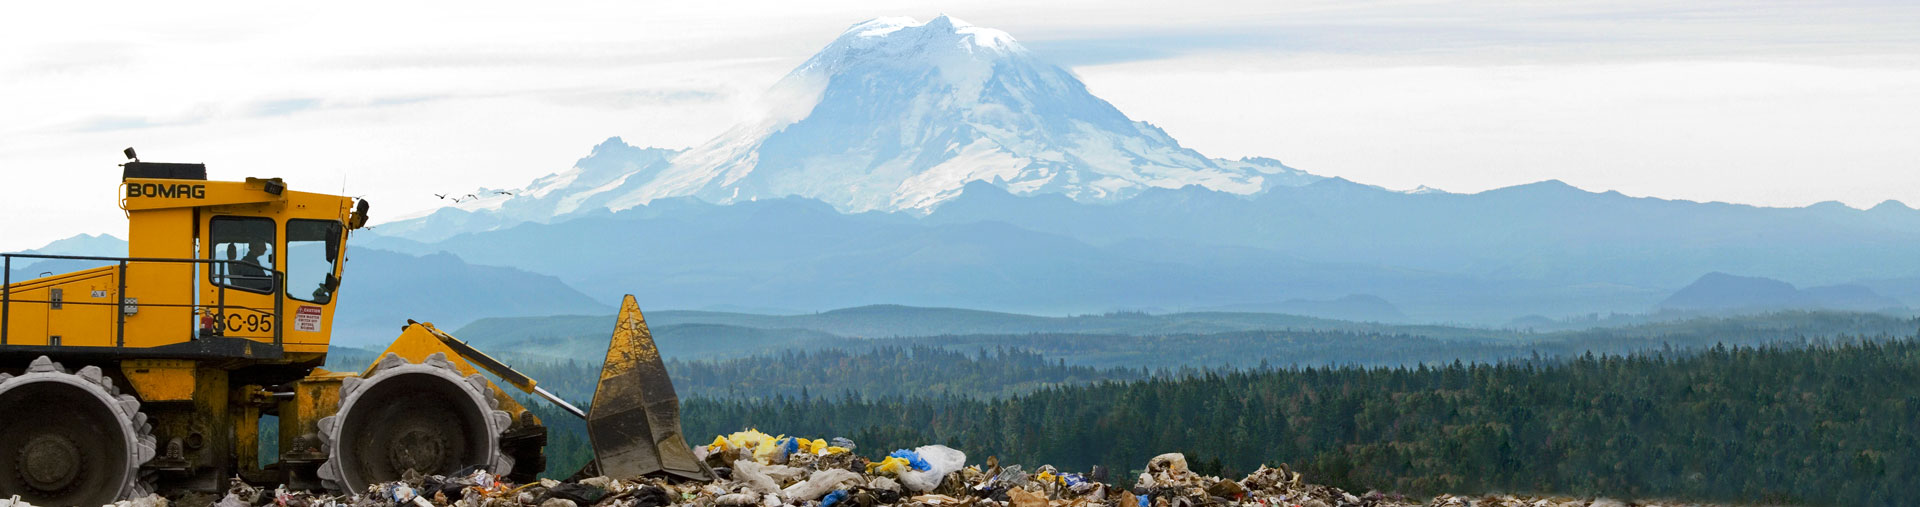 Yard Waste - Garbage & recycling services - King County